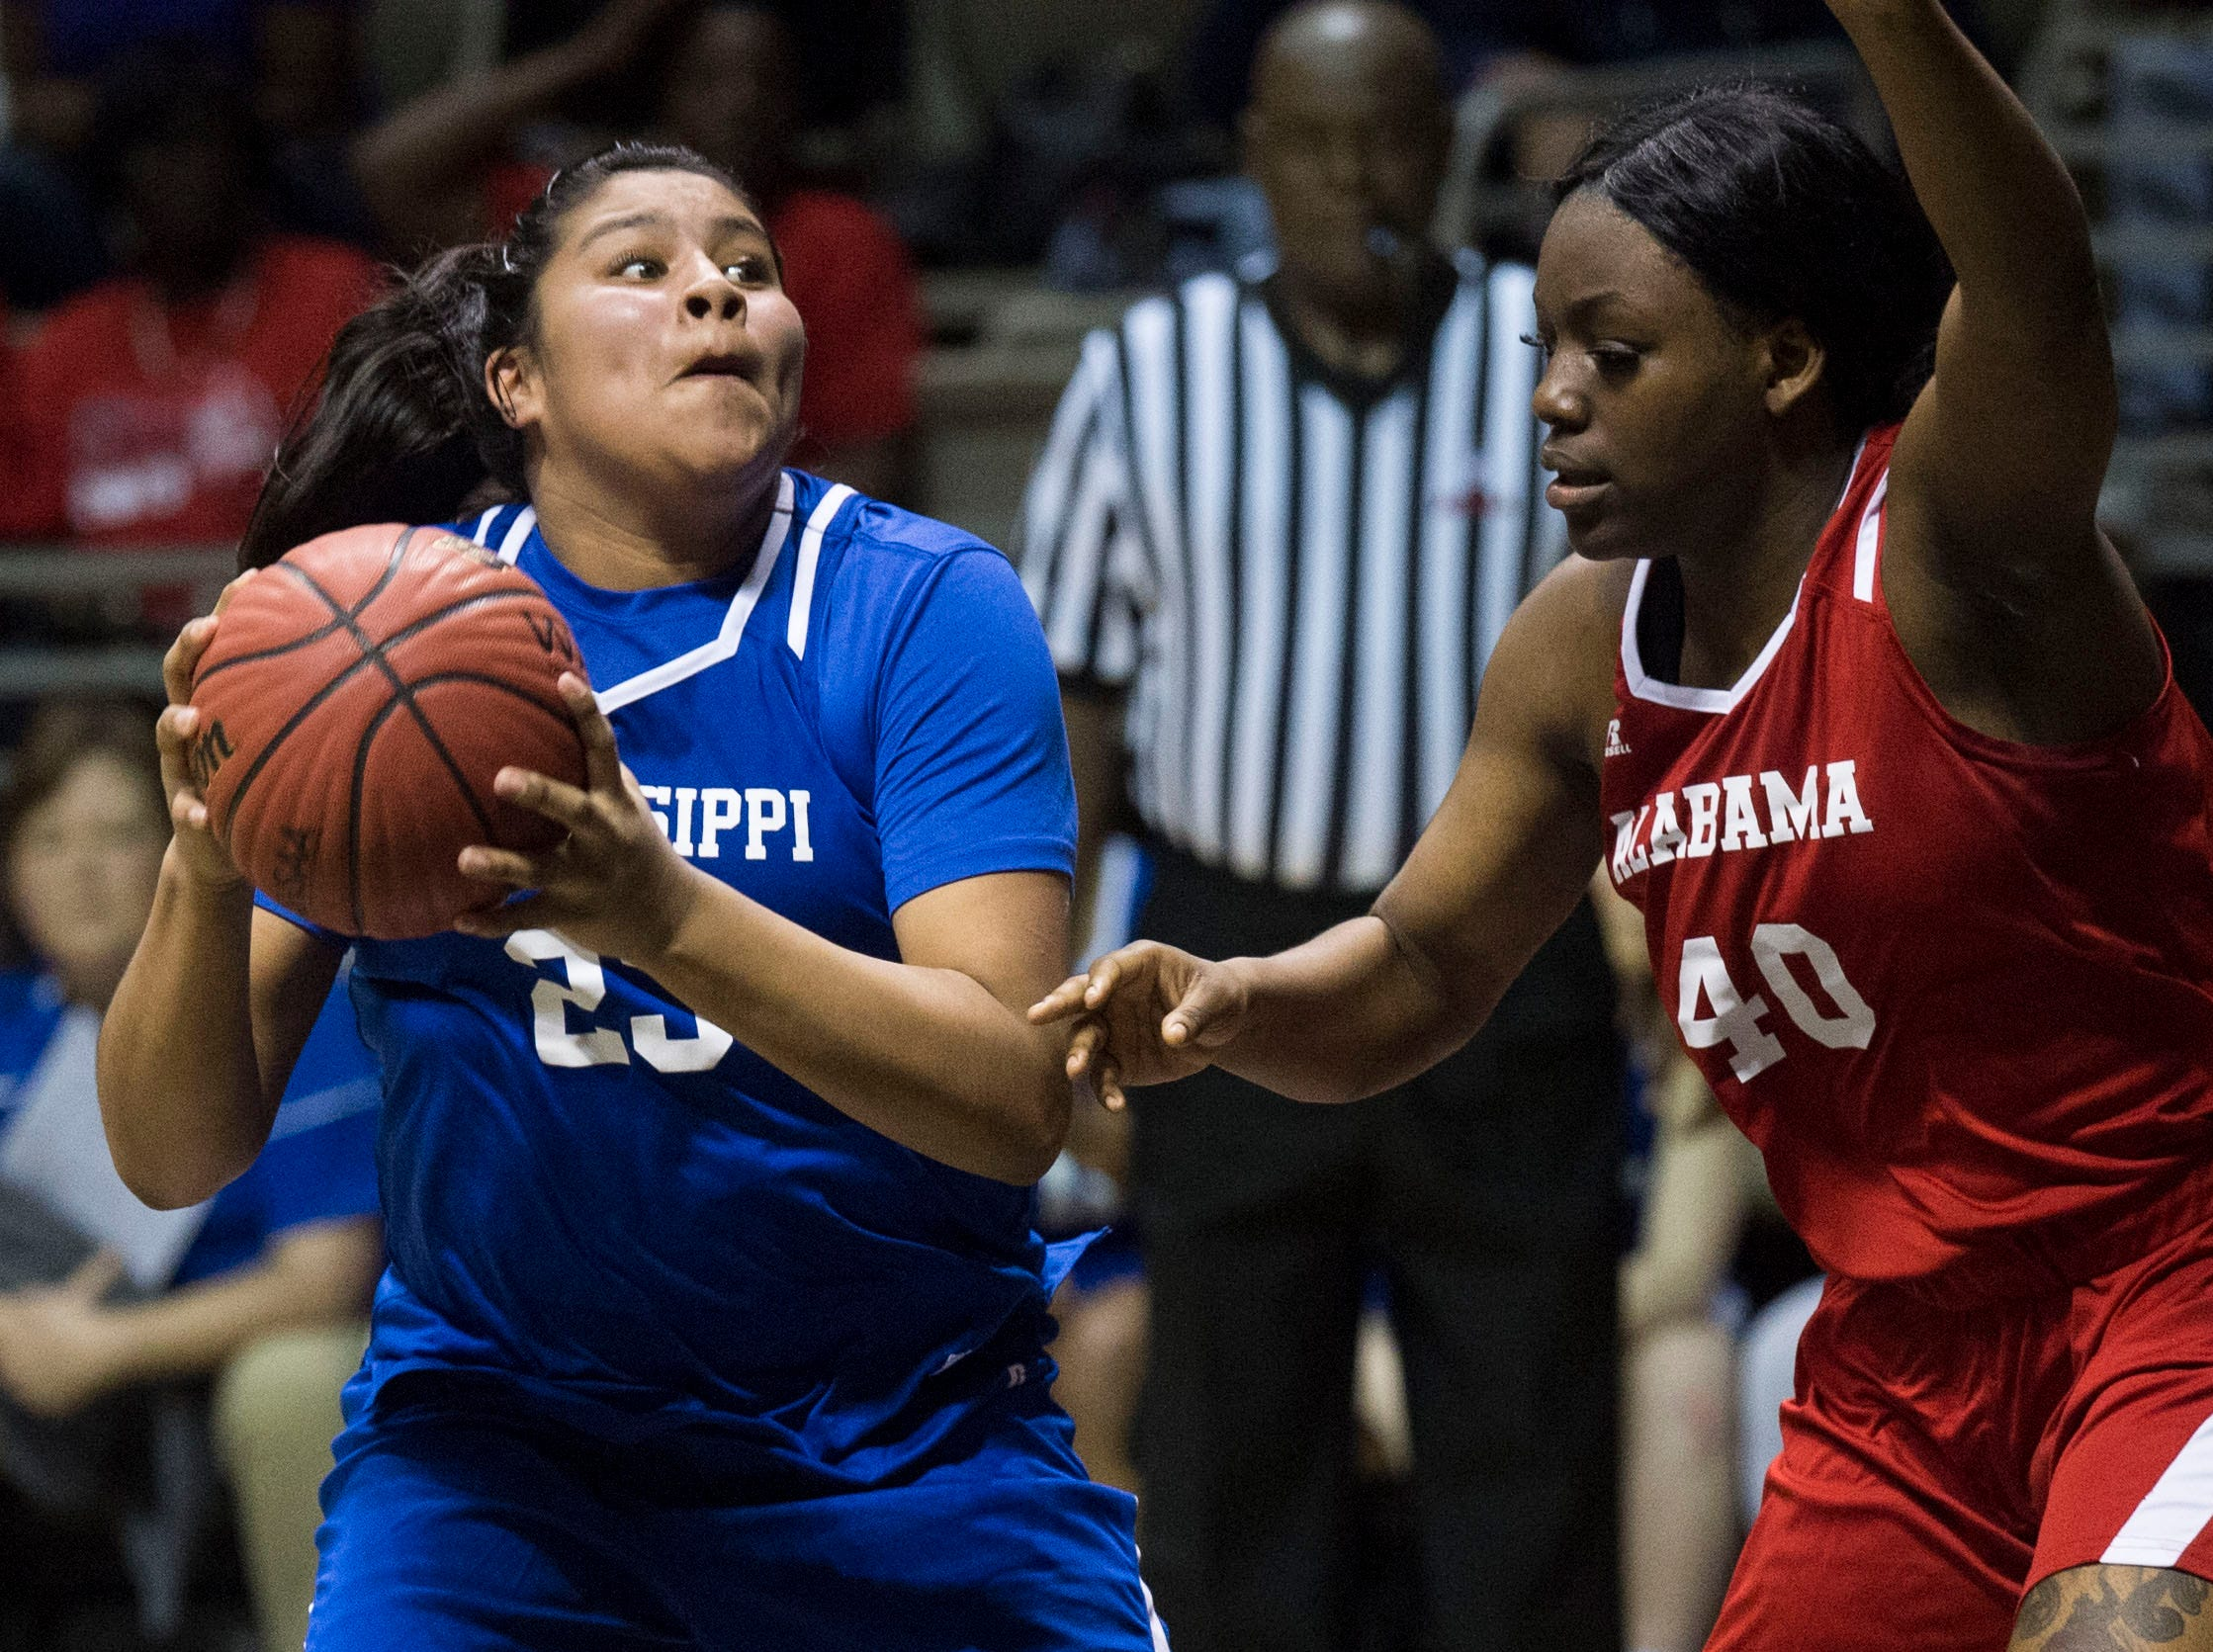 Mississippi's Kaedre Denson (23) looks to go up covered by Alabama's Thaniya Marks (40) during the Alabama-Mississippi All-Star game at the Dunn-Oliver Acadome in Montgomery, Ala., on Friday, March 15, 2019. Alabama All-stars defeated the Mississippi All-stars 101-82.